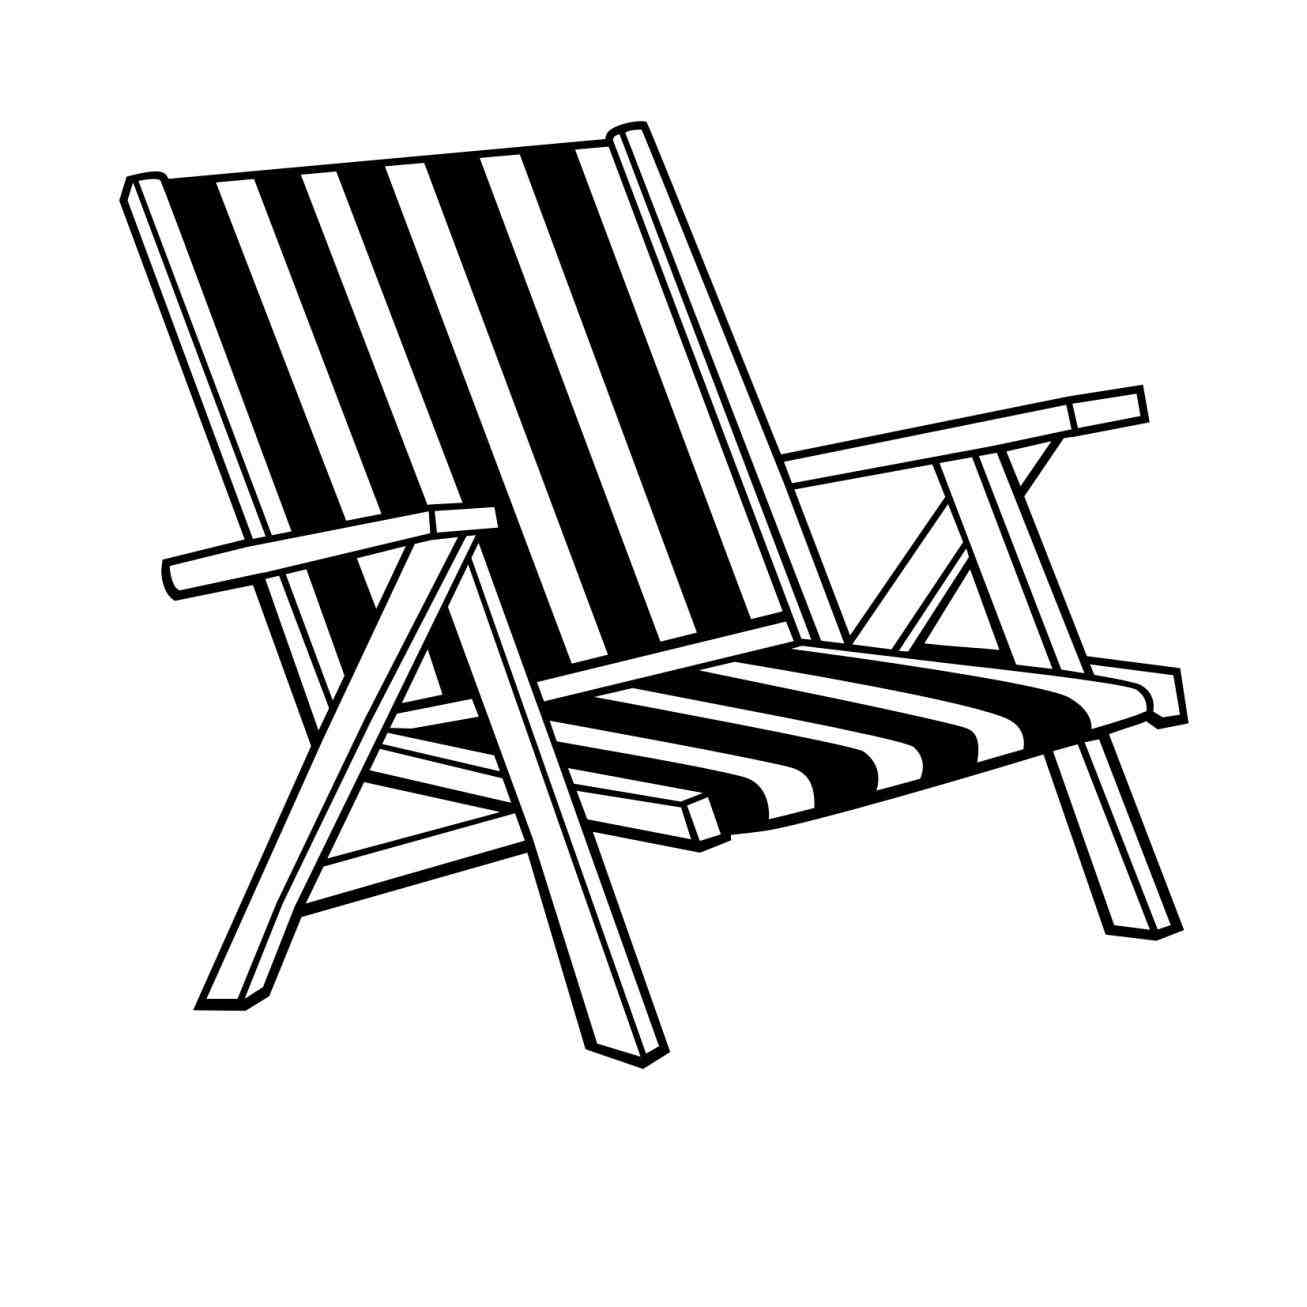 White folding chair clipart vector royalty free library Free Chair Clipart Black And White, Download Free Clip Art, Free ... vector royalty free library